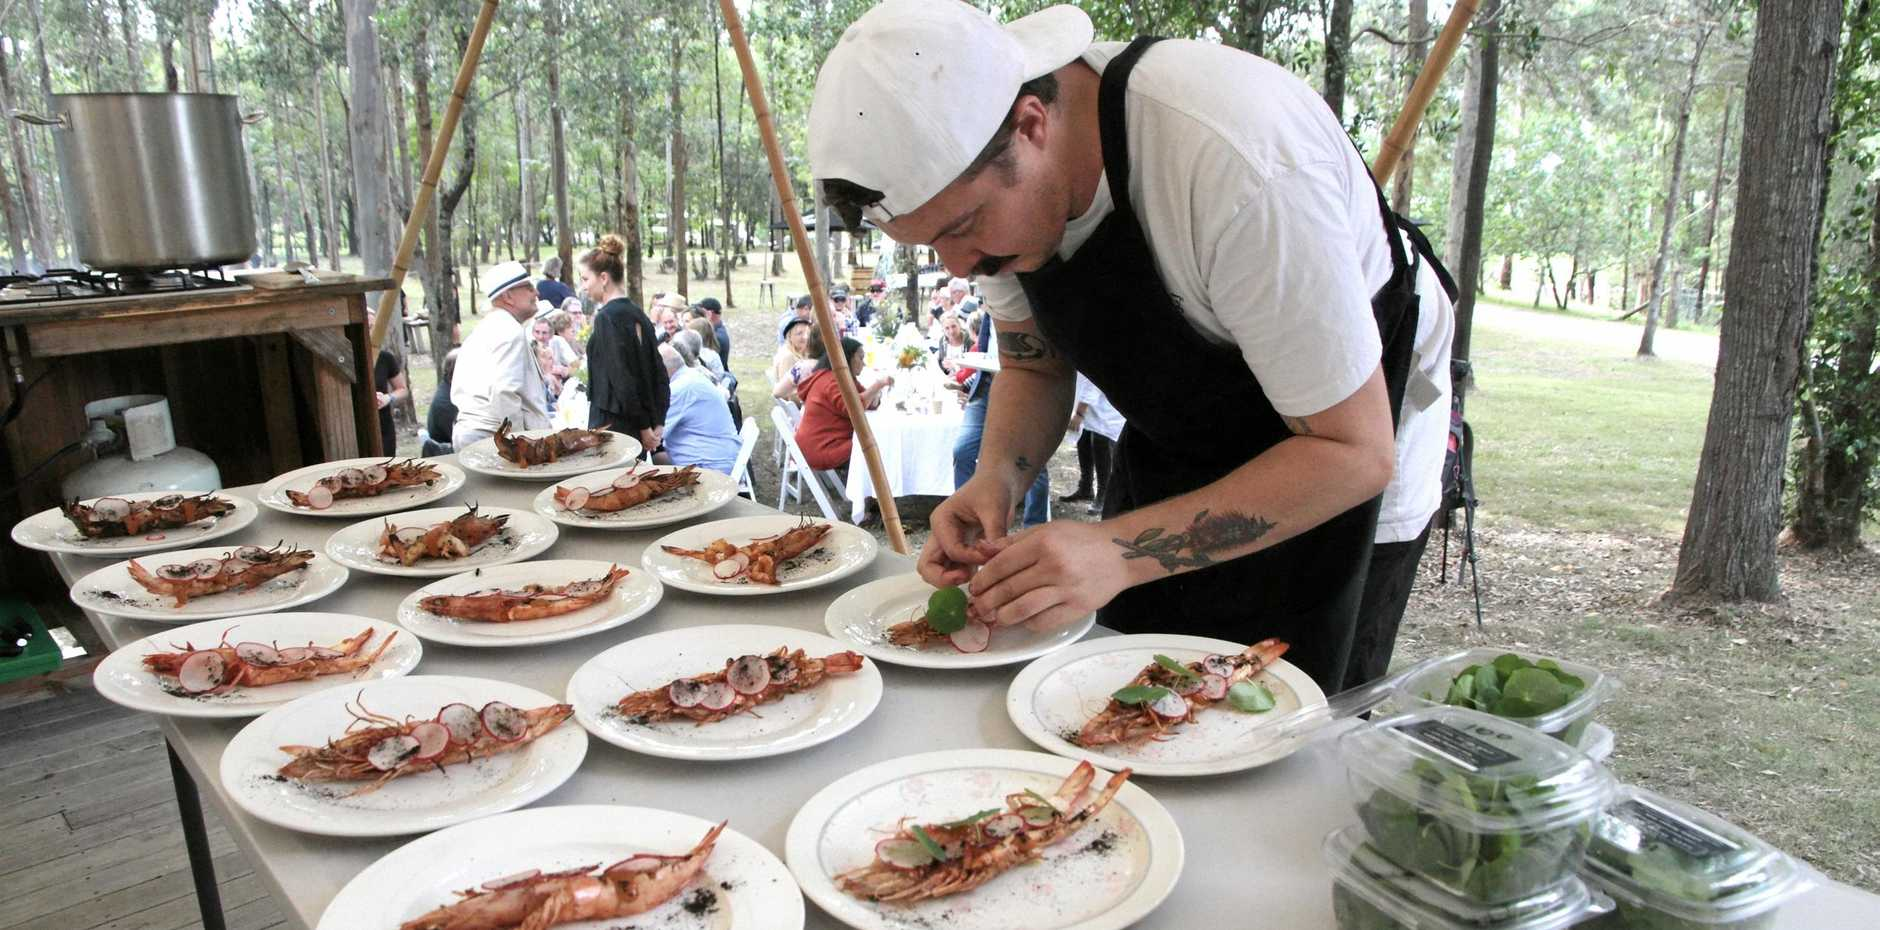 Chef Zac Roberts prepares plates for the patrons at Feast in the Field at Solum Farm on Saturday.